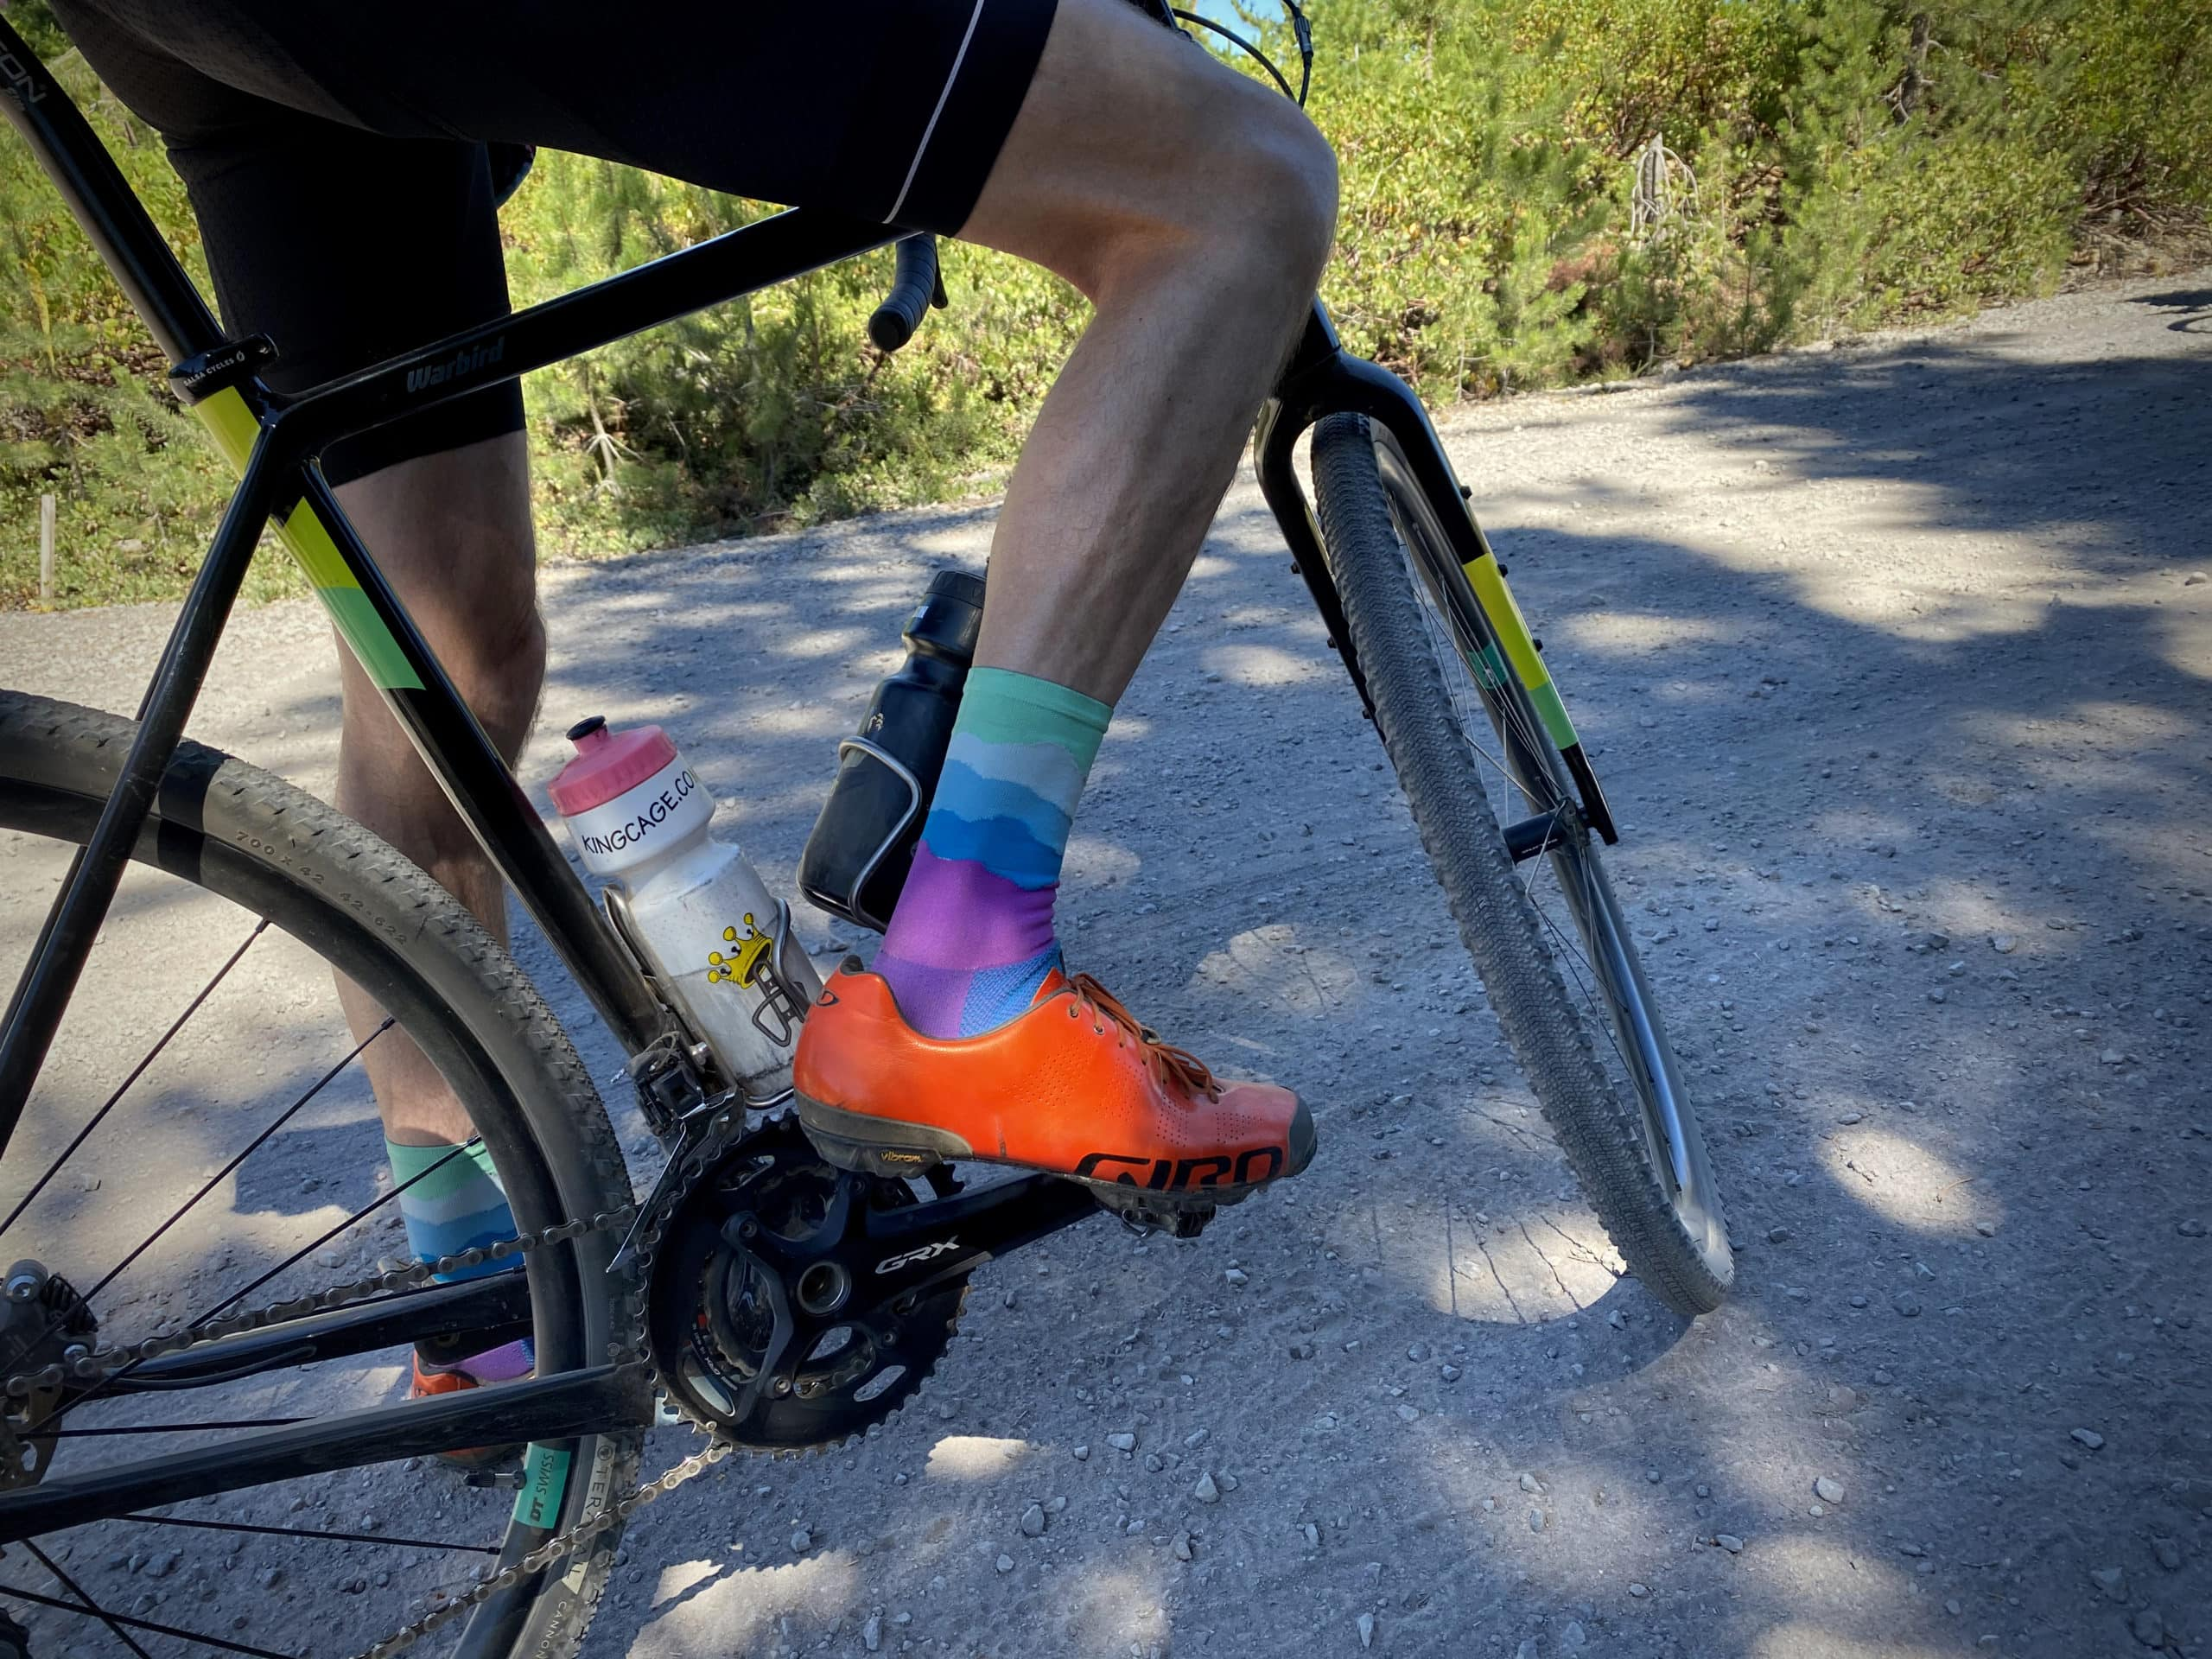 Cyclist with colorful shoes and socks.